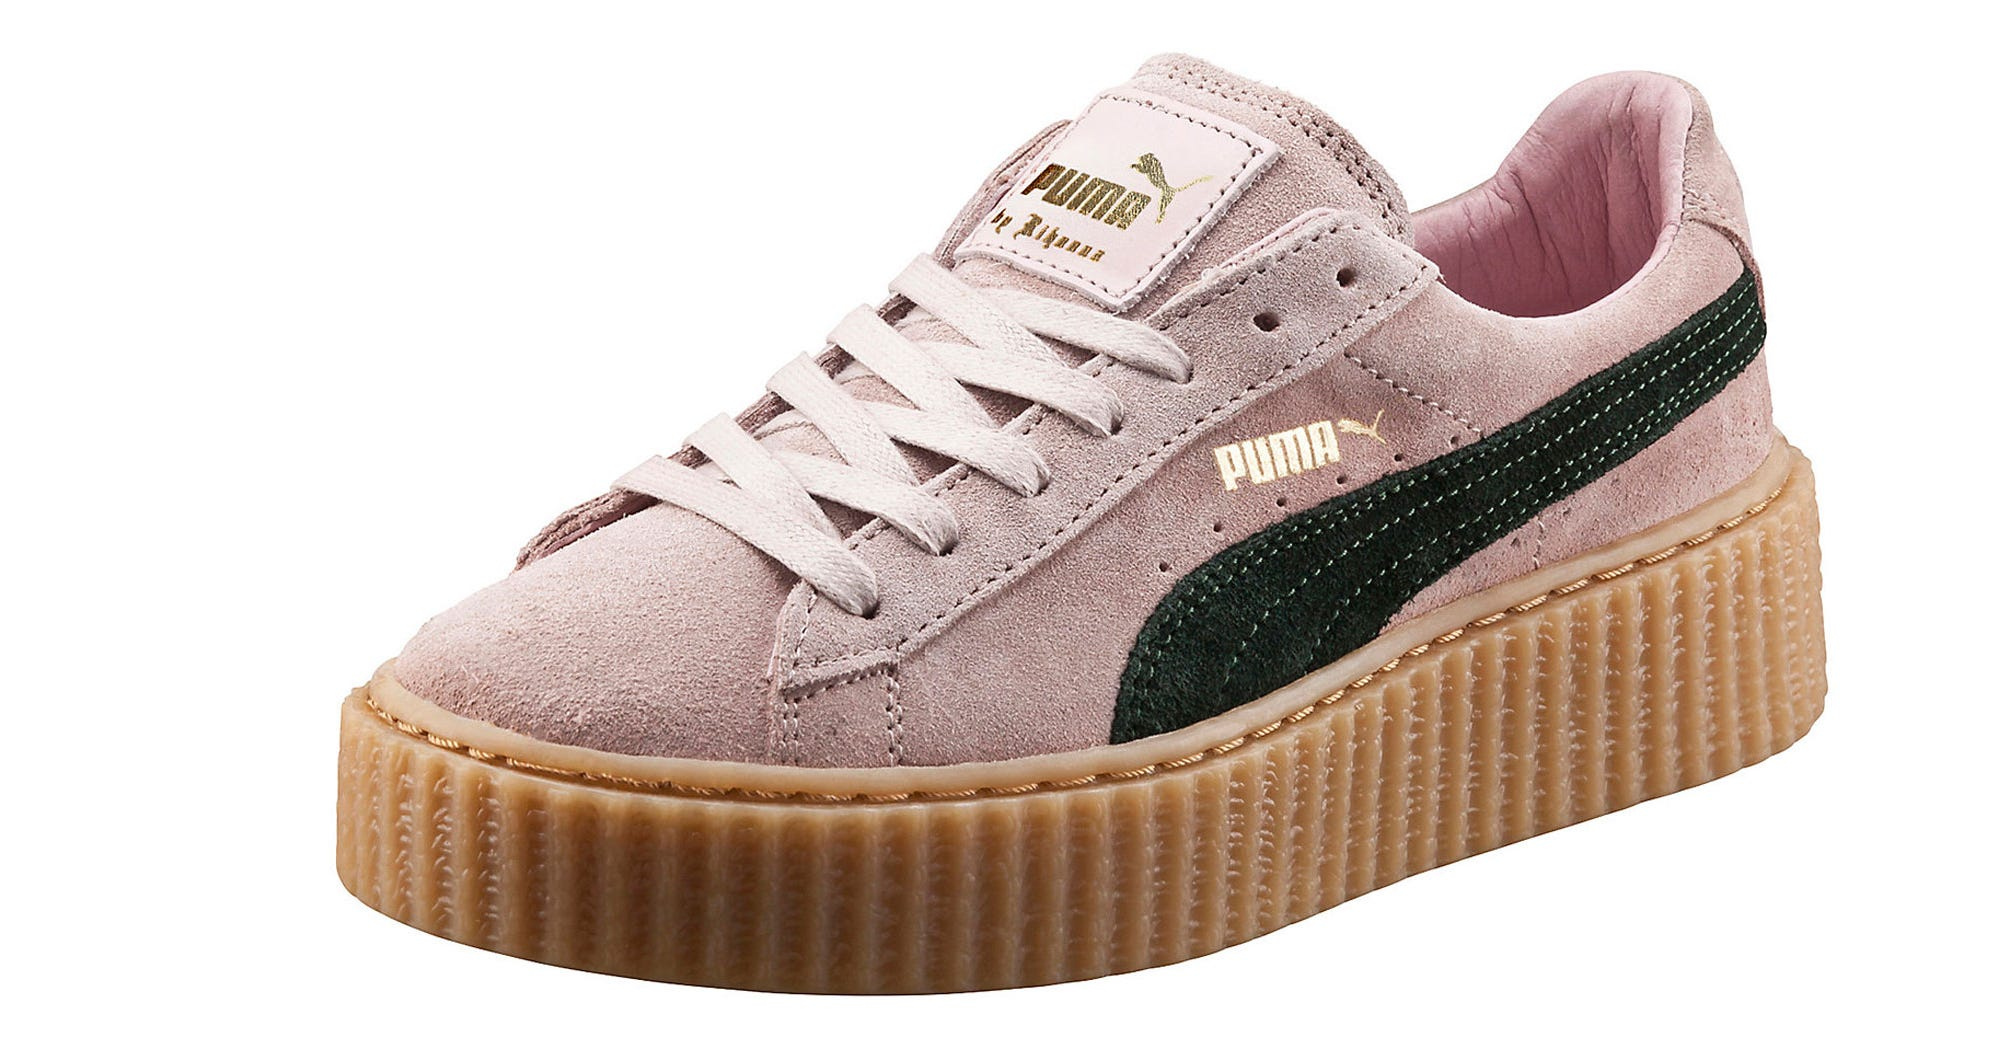 cdbe2321af45 Puma Best Selling Sold Out Fenty Creepers